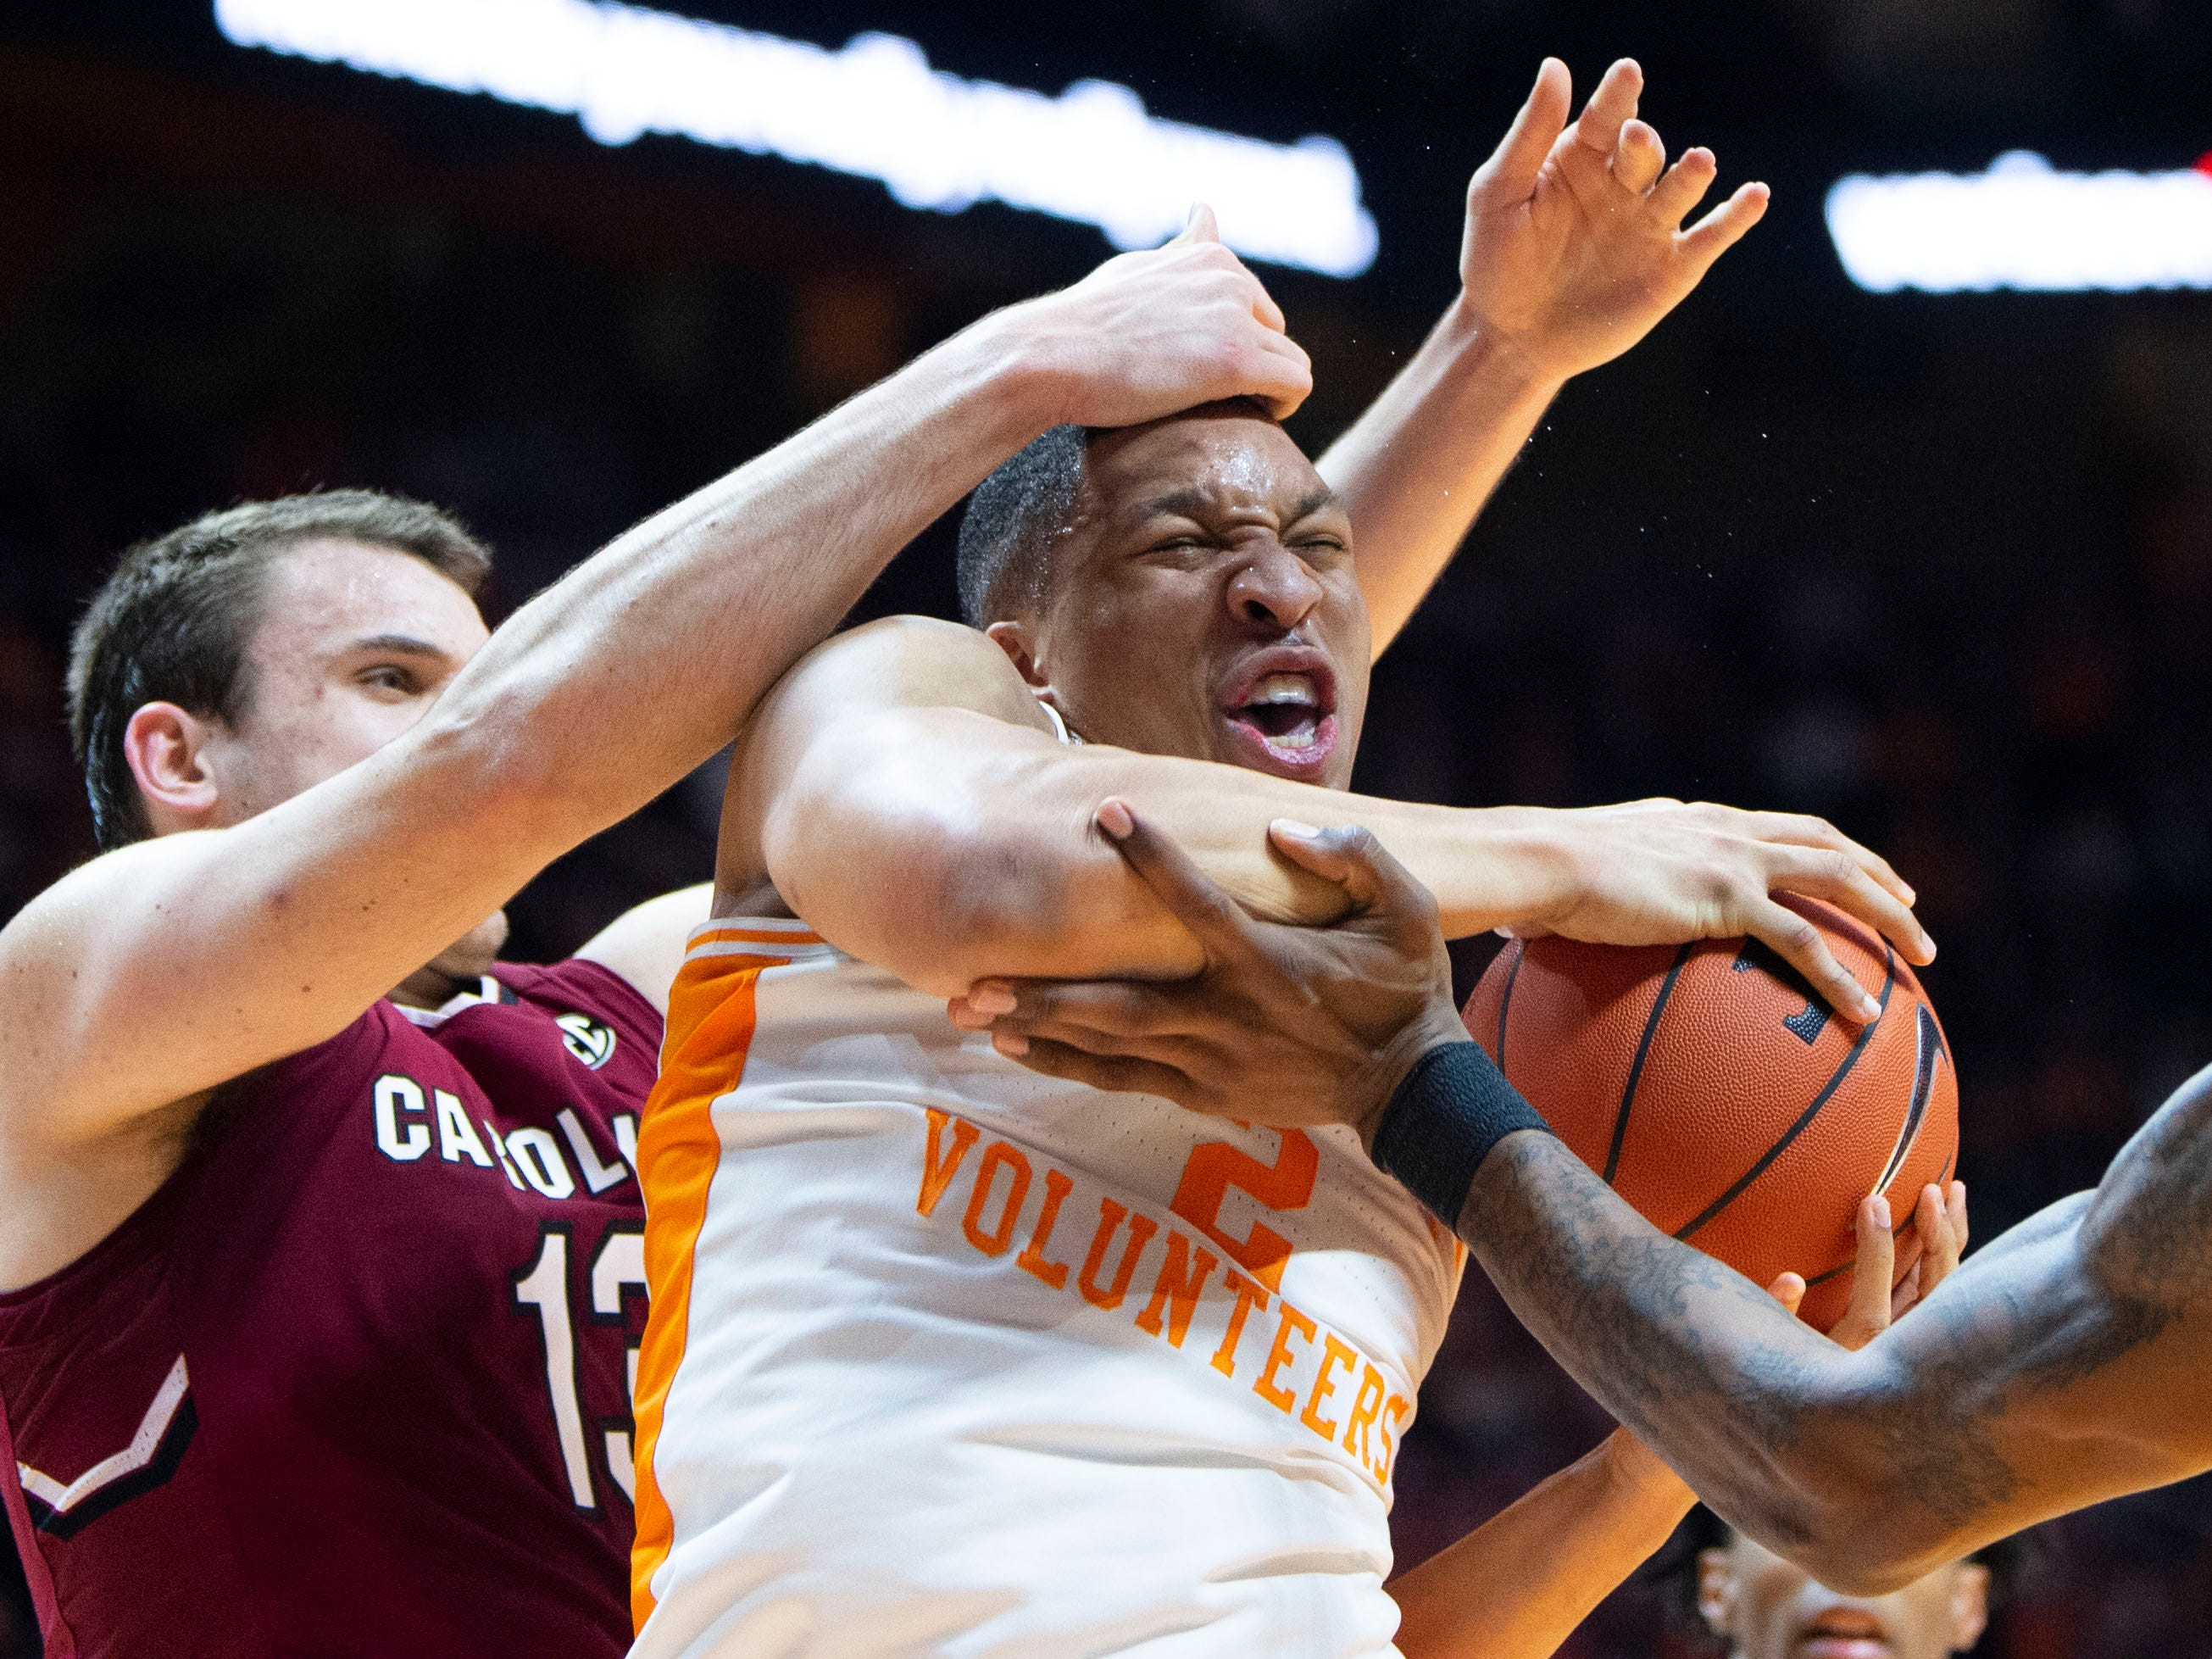 Tennessee's Grant Williams (2) battles and gets the rebound against South Carolina on Wednesday, February 13, 2019.